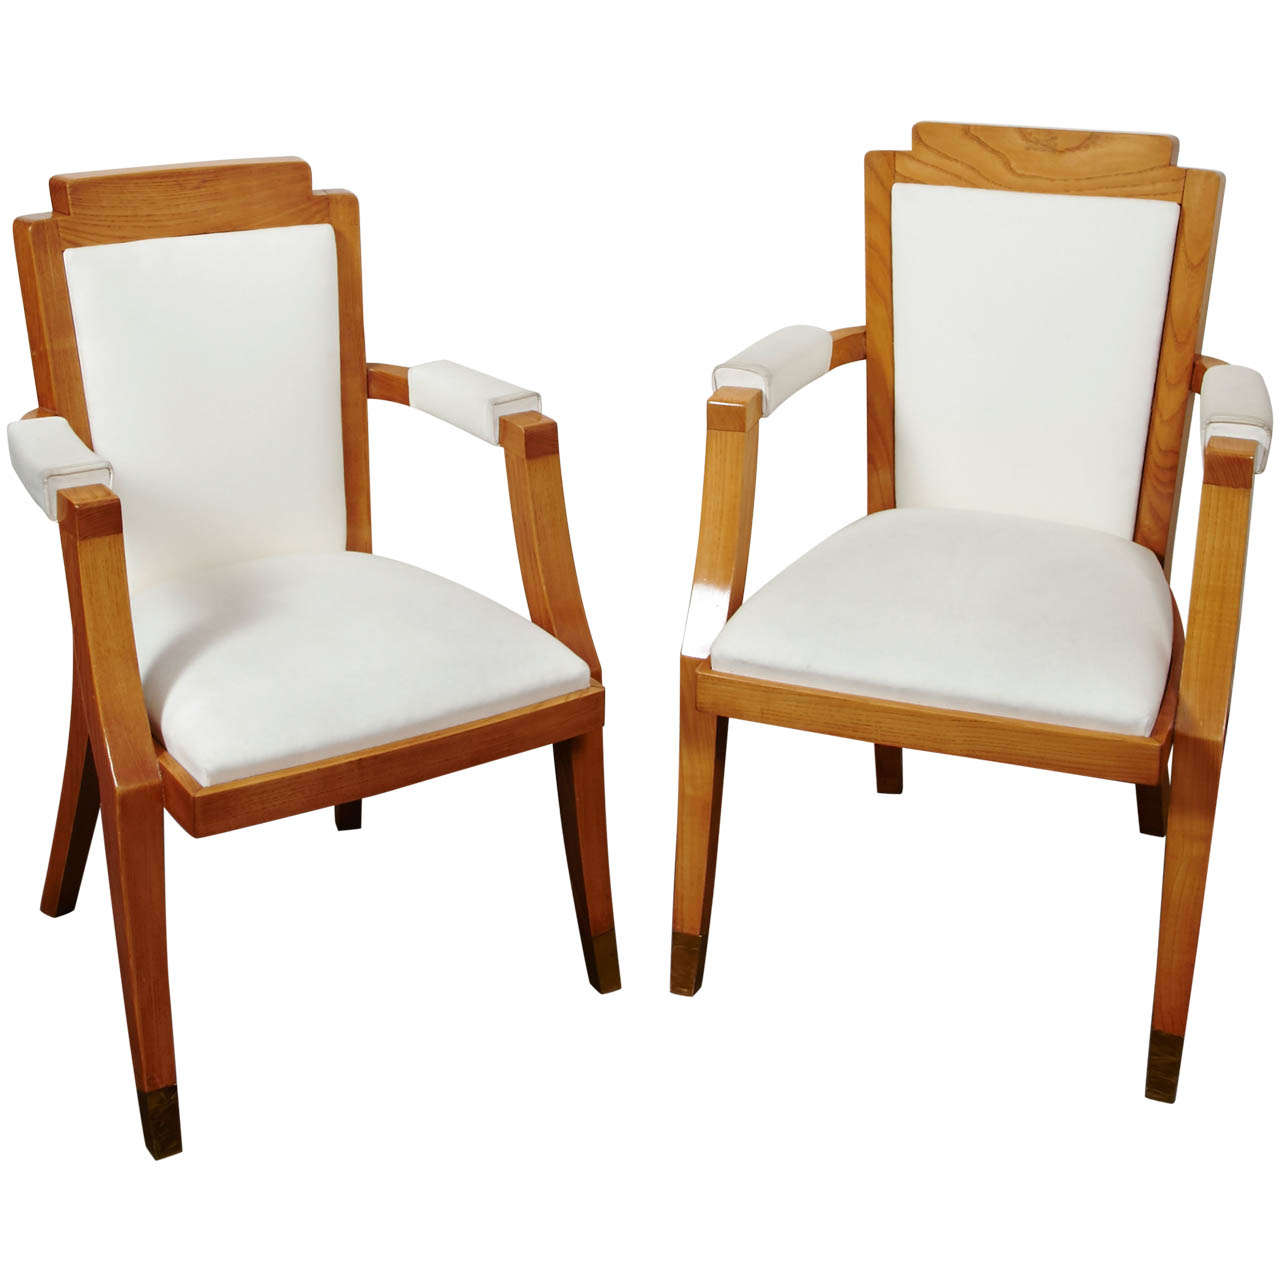 Pair of Beech Tree Armchairs by G. Darbois-Gaudin, 1949 For Sale